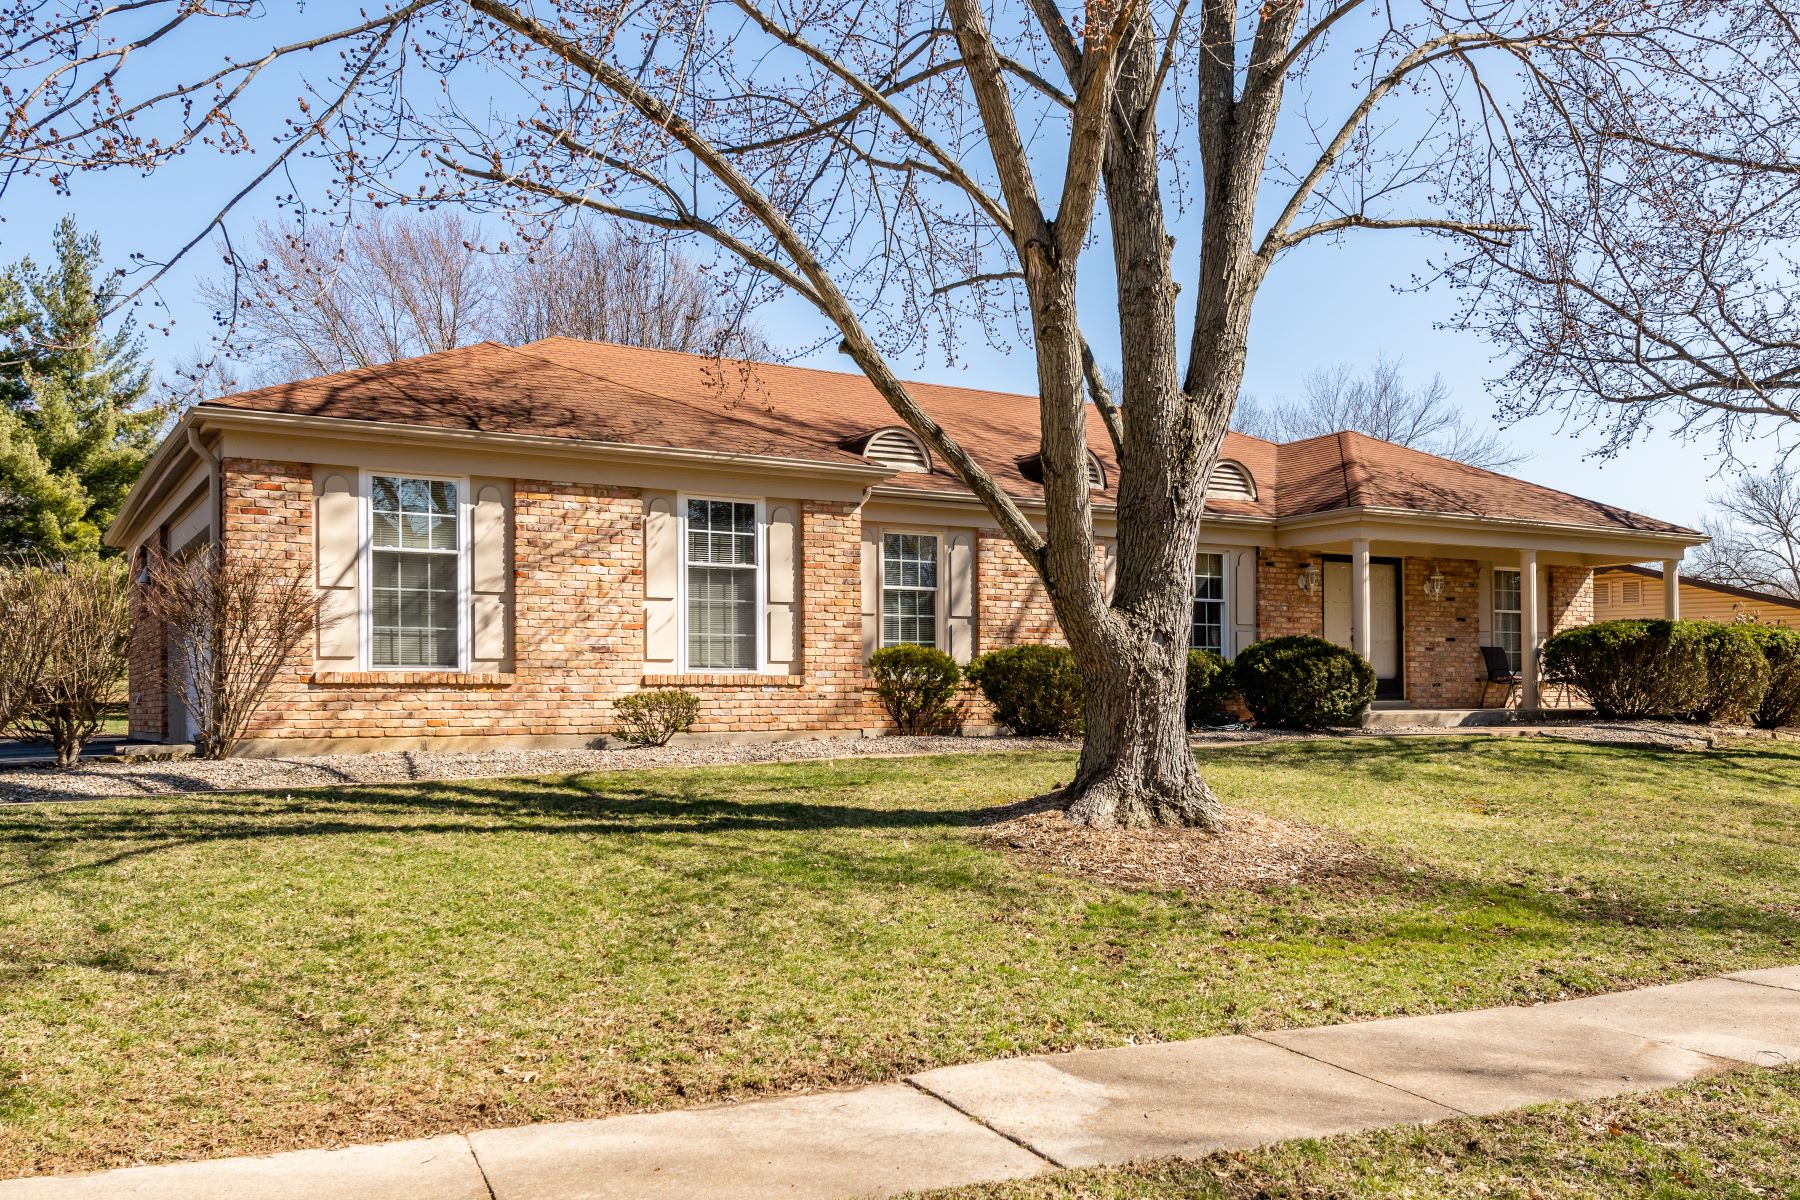 Single Family Home for Sale at 1552 Woodroyal West Drive, Chesterfield, MO 63017 1552 Woodroyal West Drive Chesterfield, Missouri 63017 United States